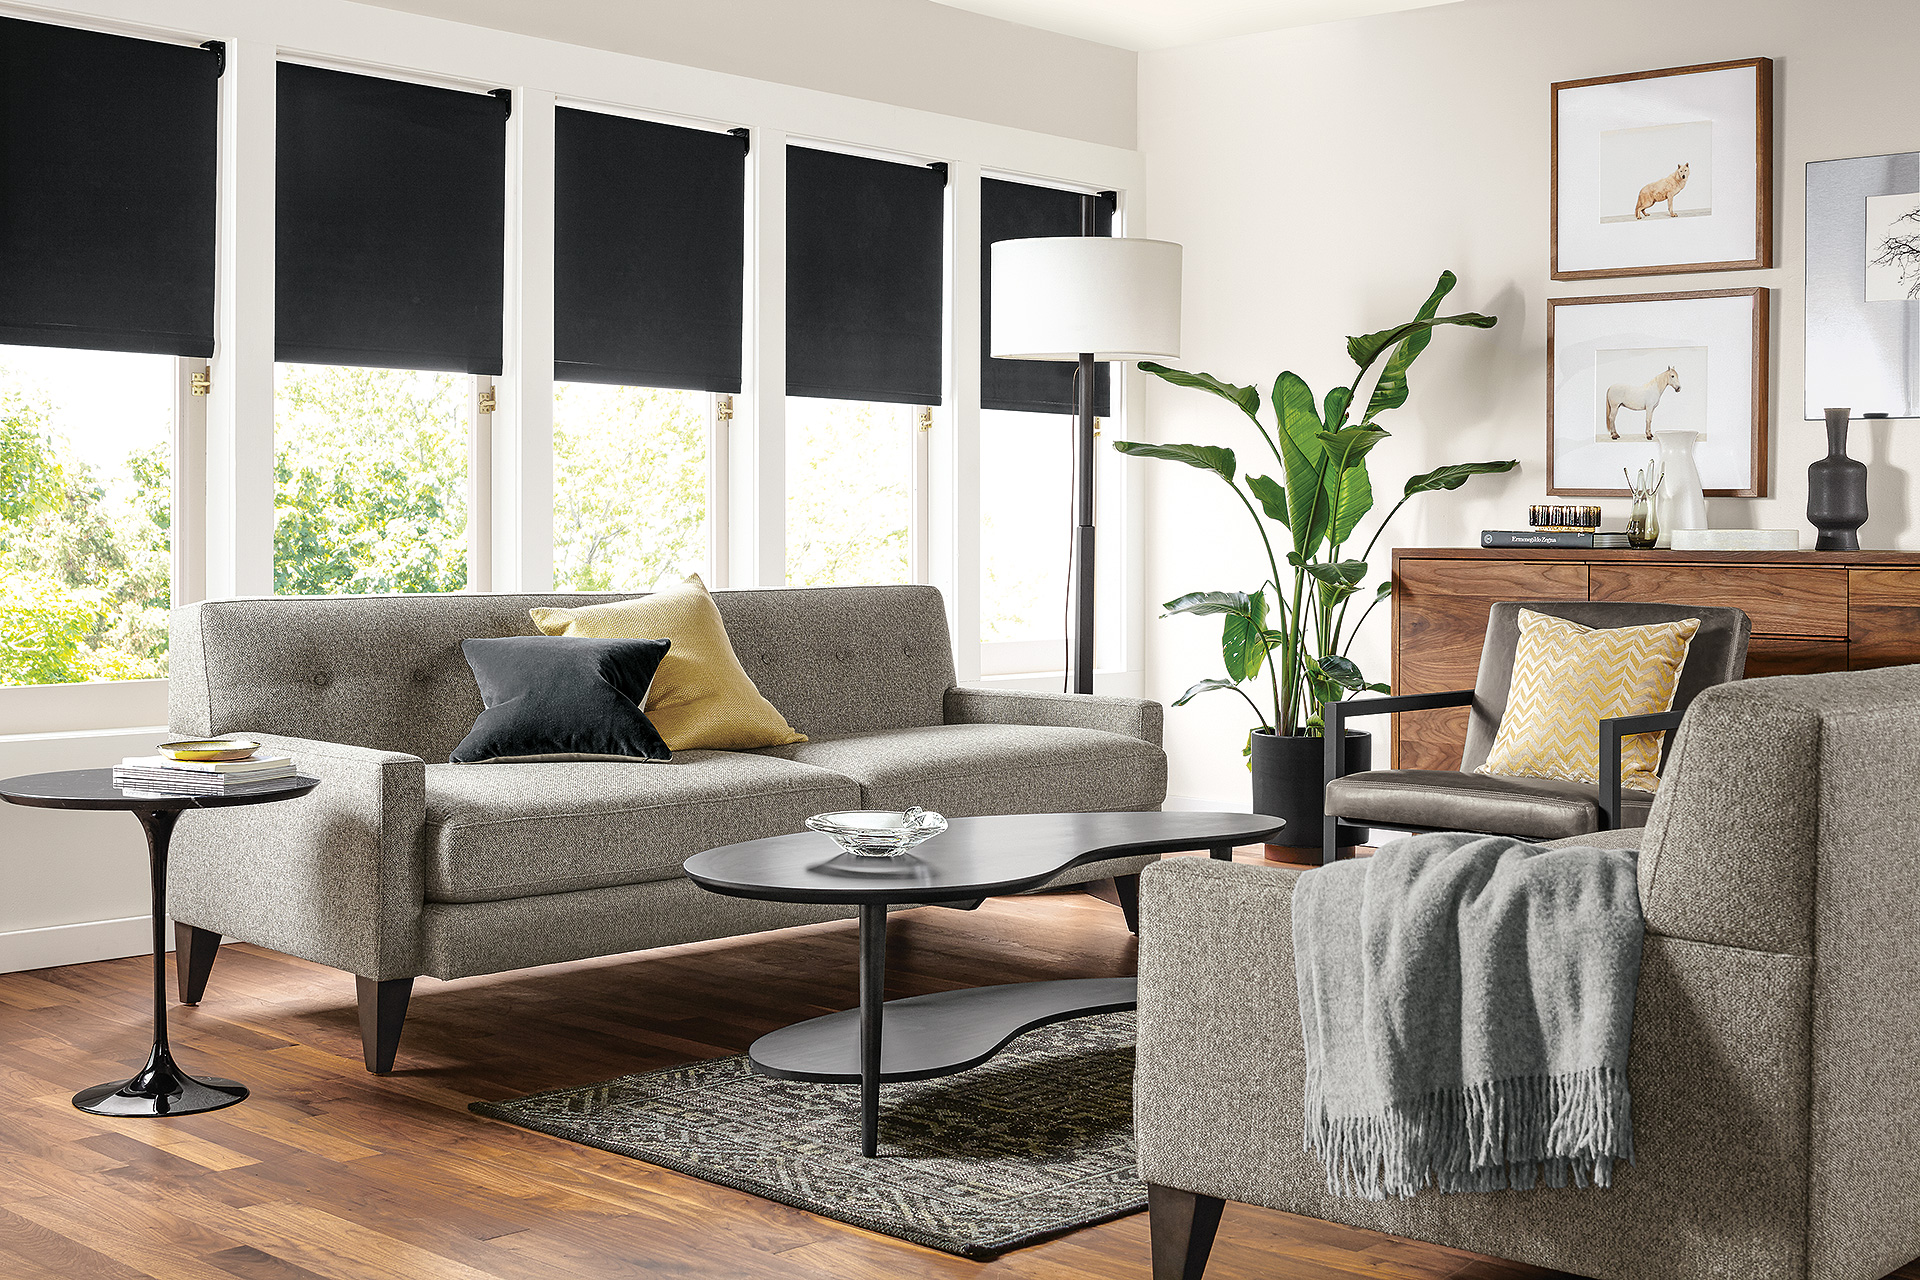 Decorating A Small Apartment Why This Room Works Sophisticated Living Room Room And Board